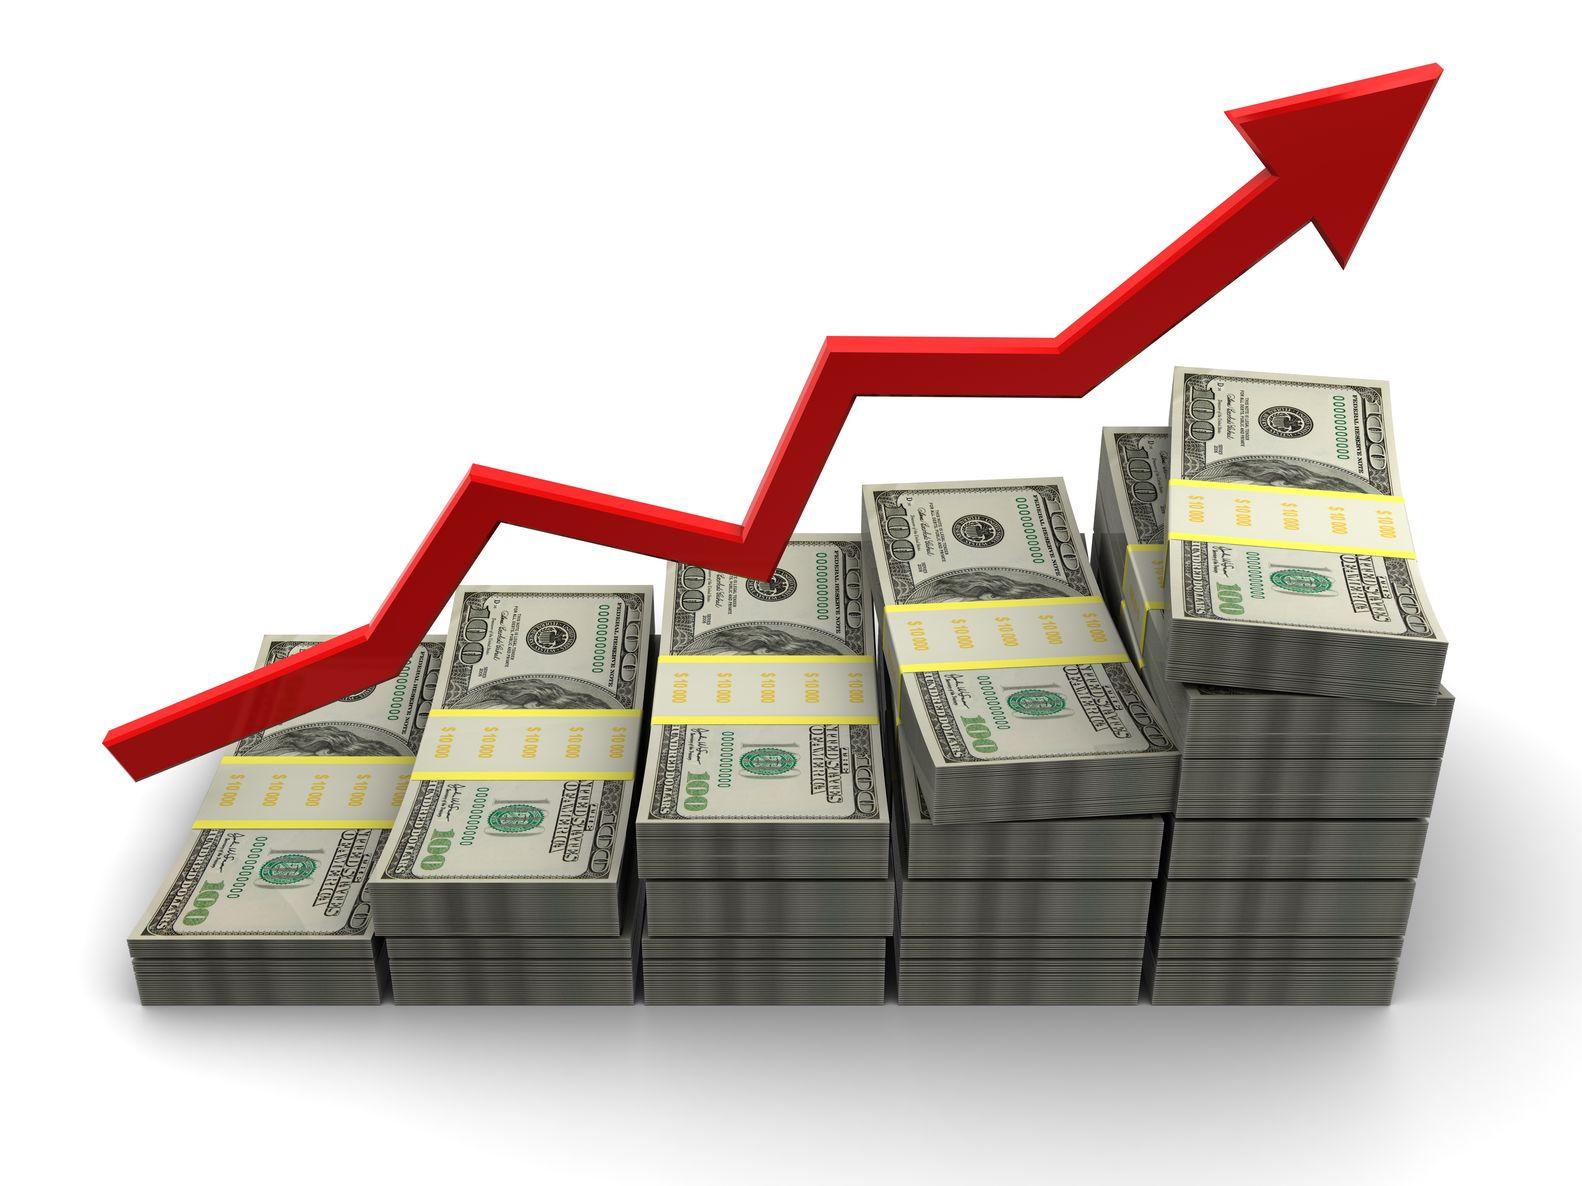 9518854 - 3d illustration of rising money charts, business success concept